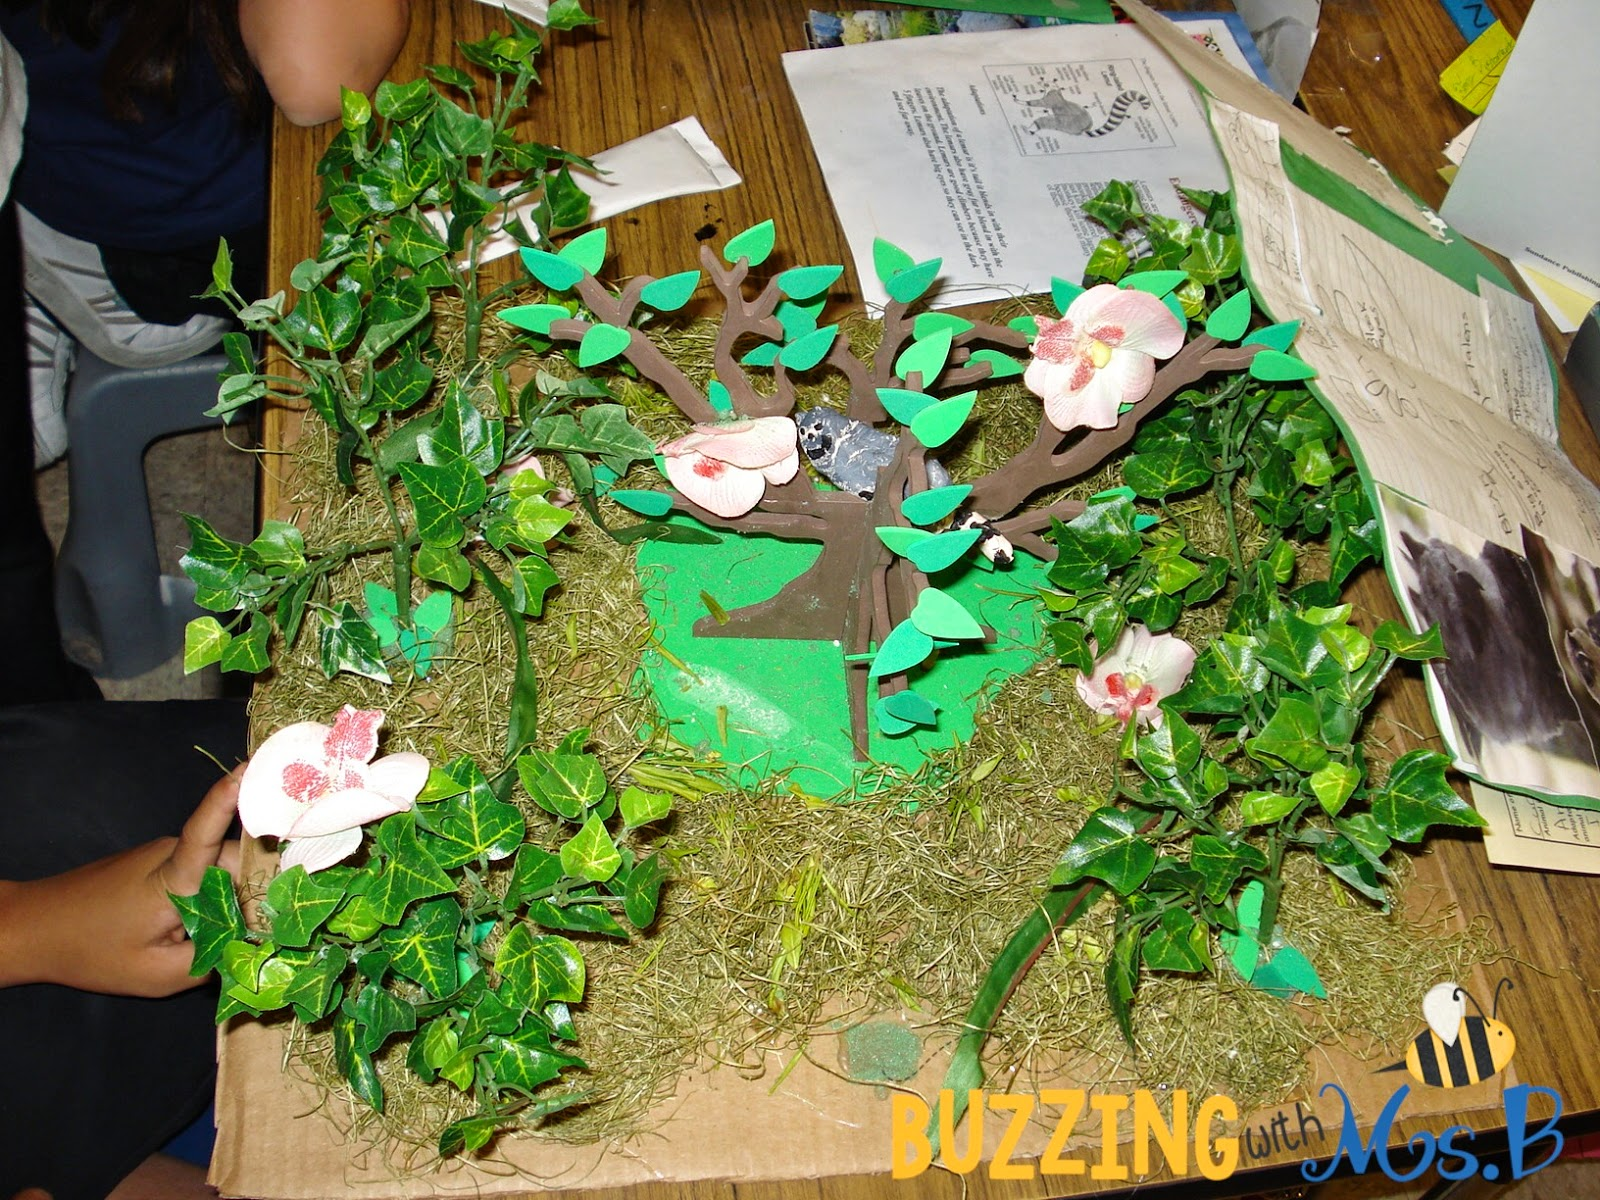 Buzzing With Ms B A Rainforest Museum For Earth Day